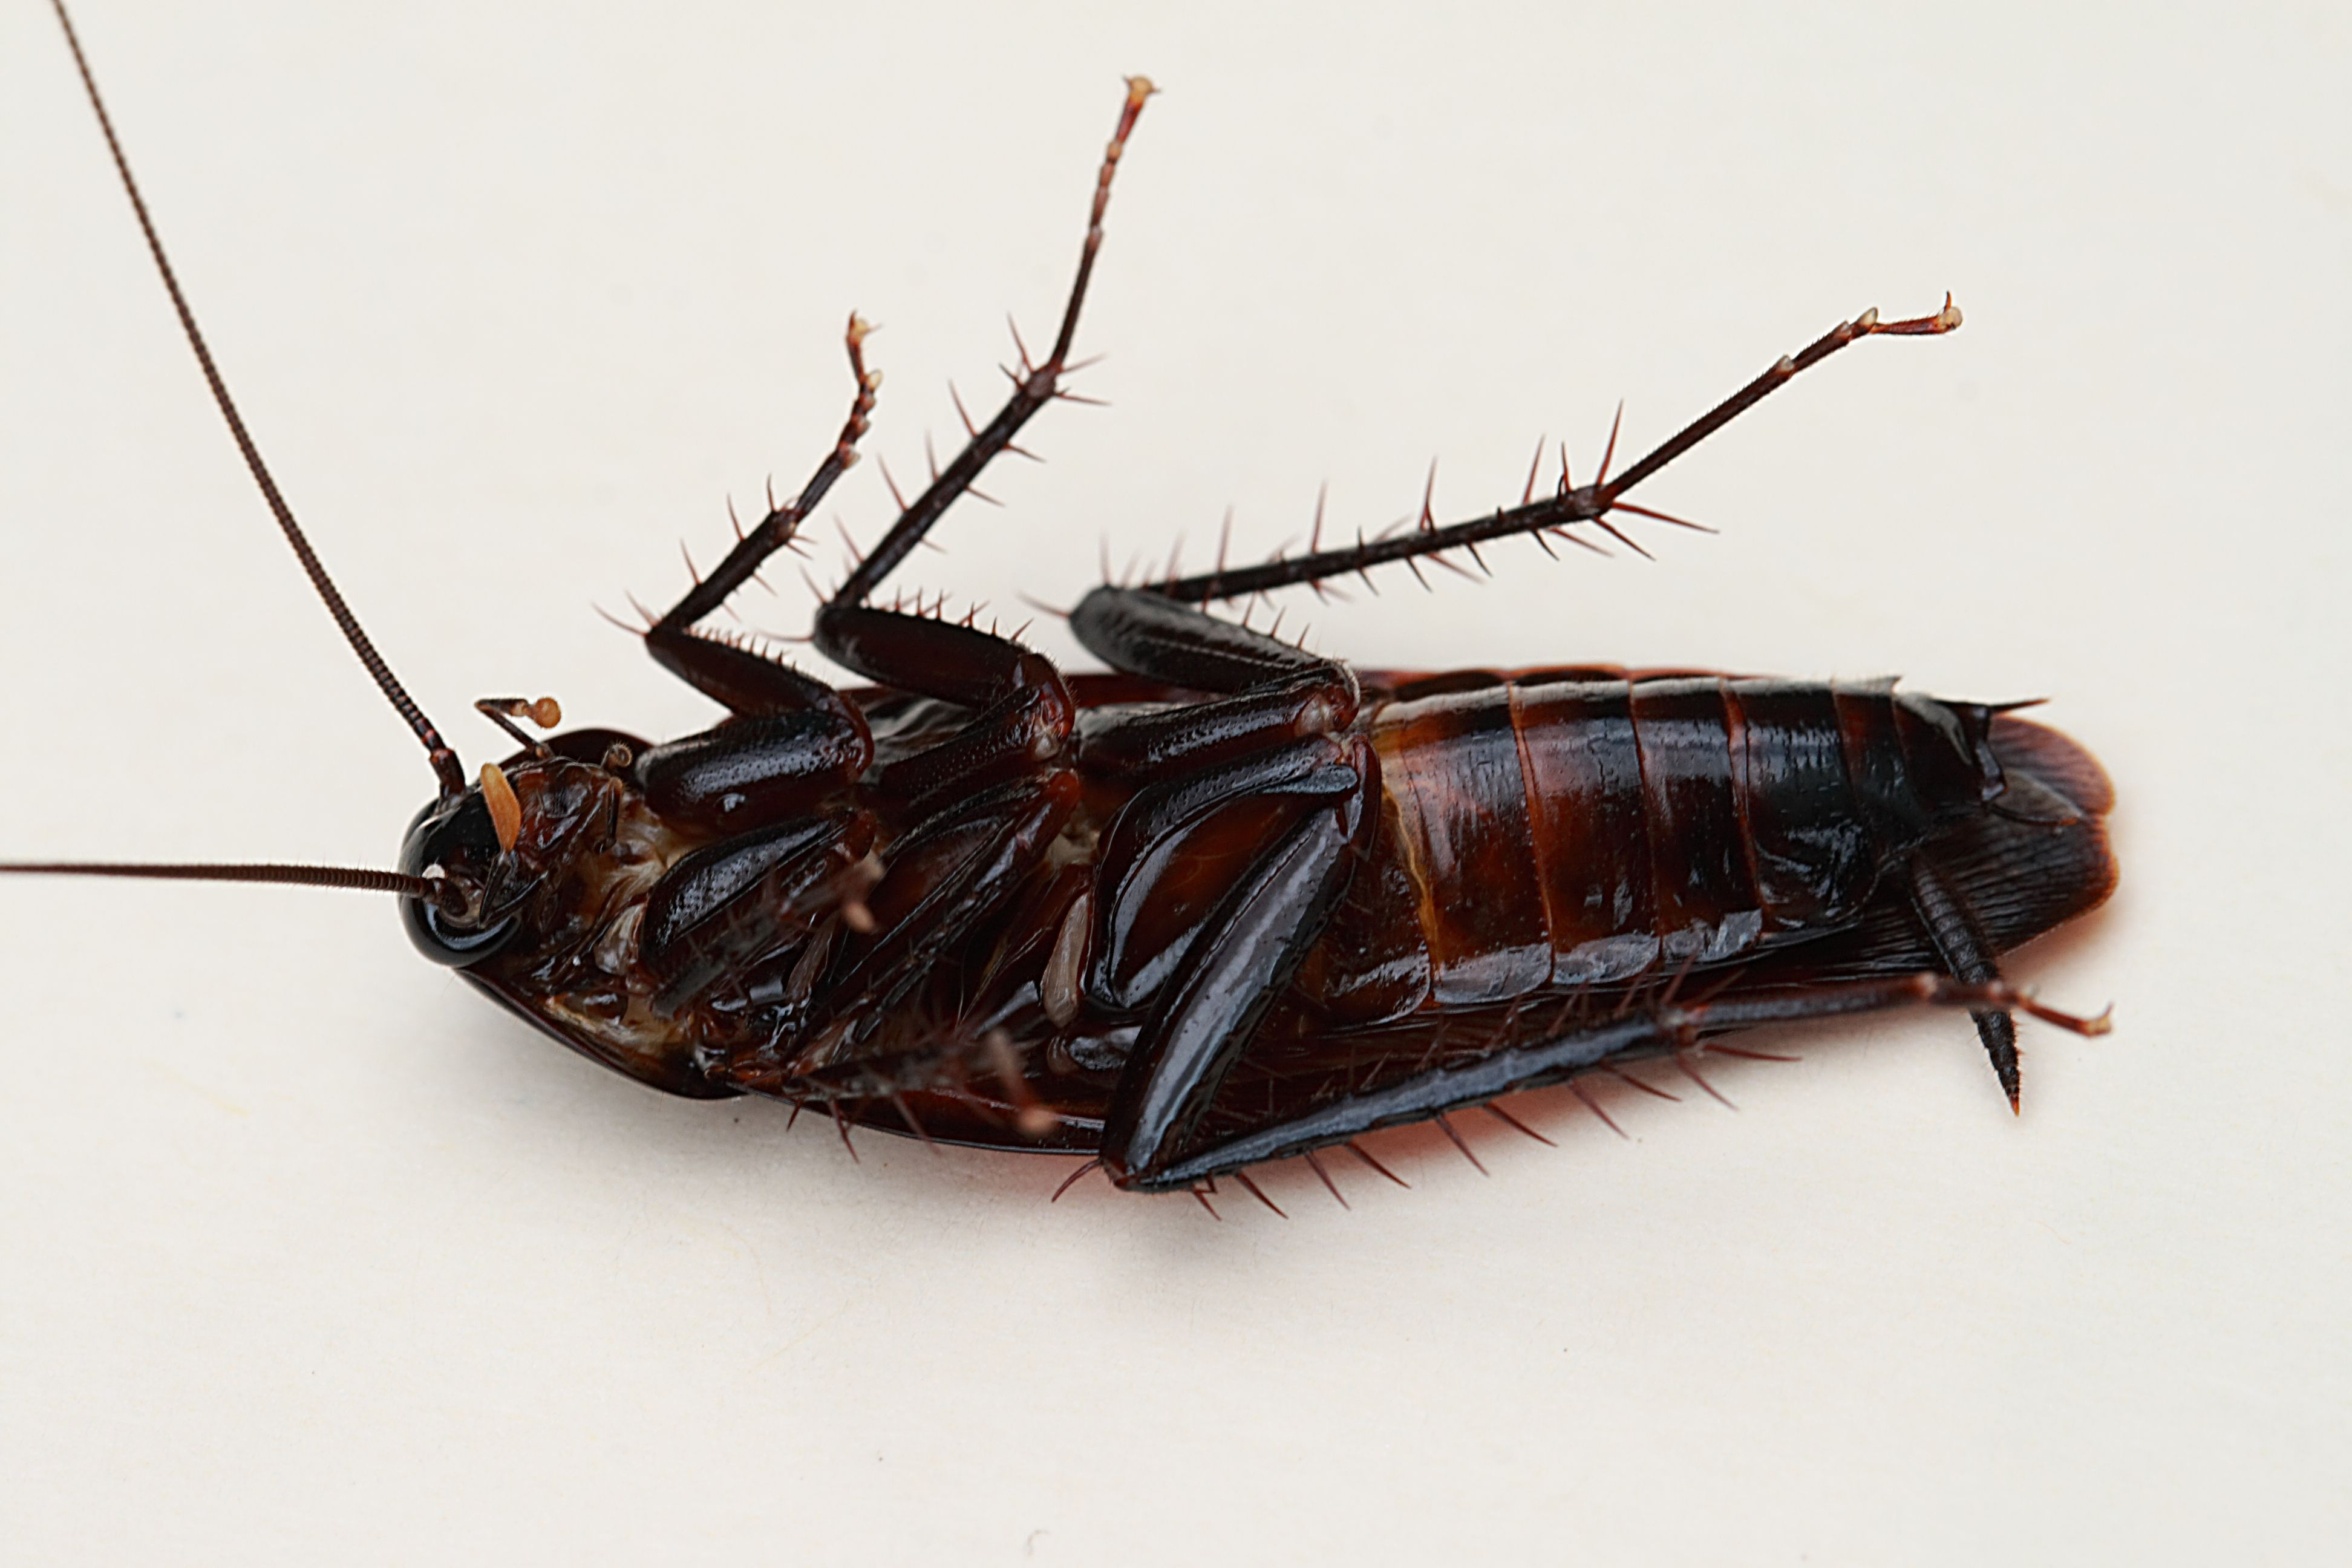 Smokybrown cockroach Wikipedia, the free encyclopedia